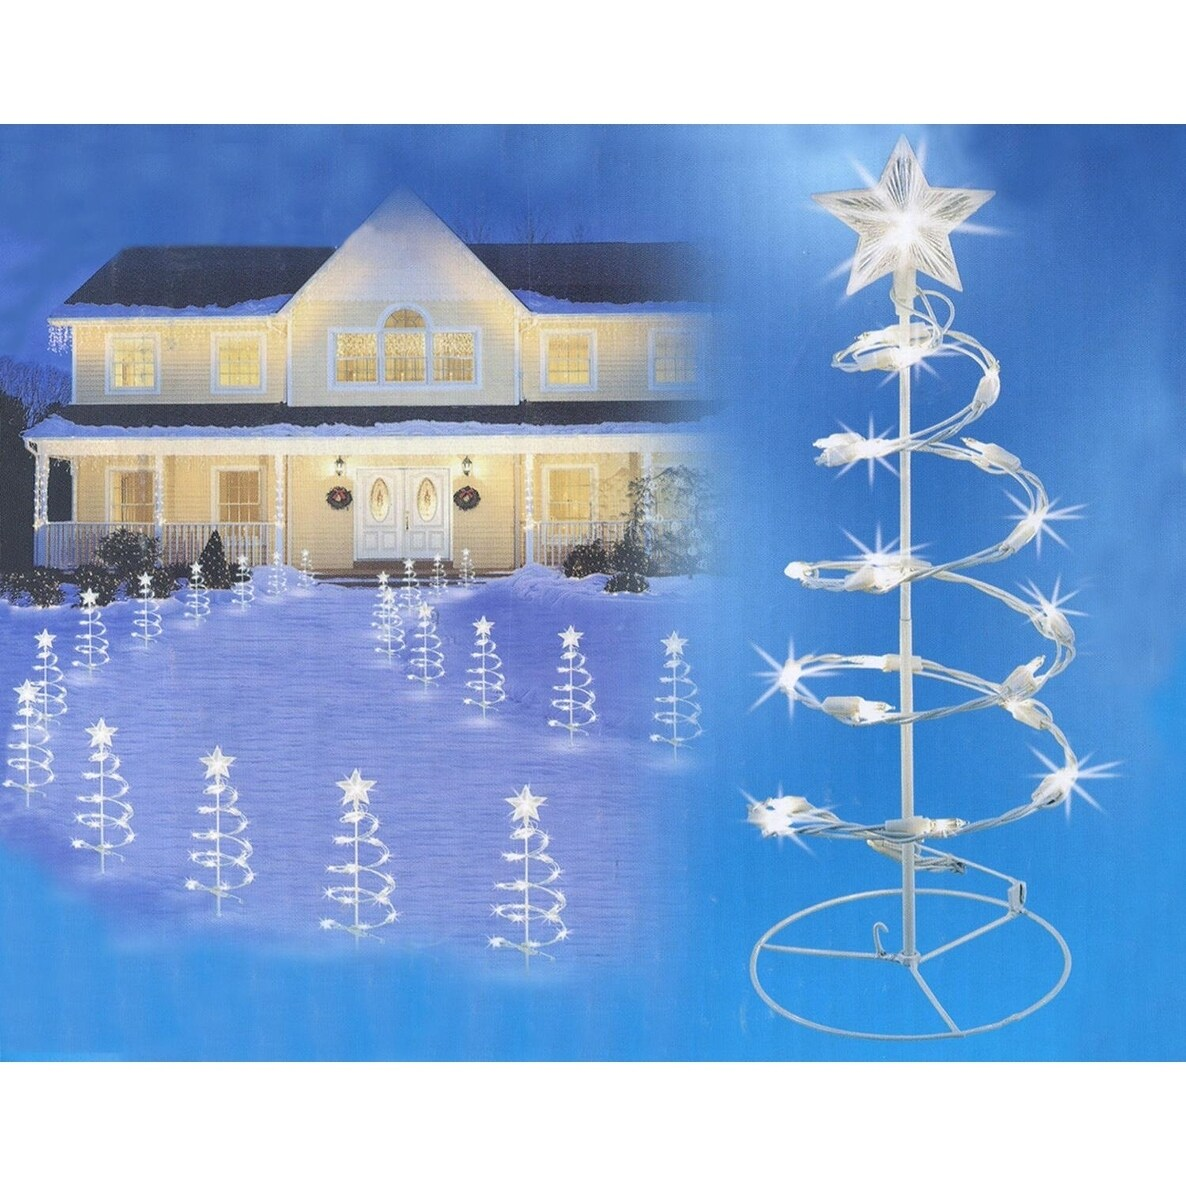 shop set of 3 clear lighted outdoor spiral walkway christmas trees yard art 18 free shipping today overstockcom 17400039 - Outdoor Christmas Decorations Led Spiral Tree